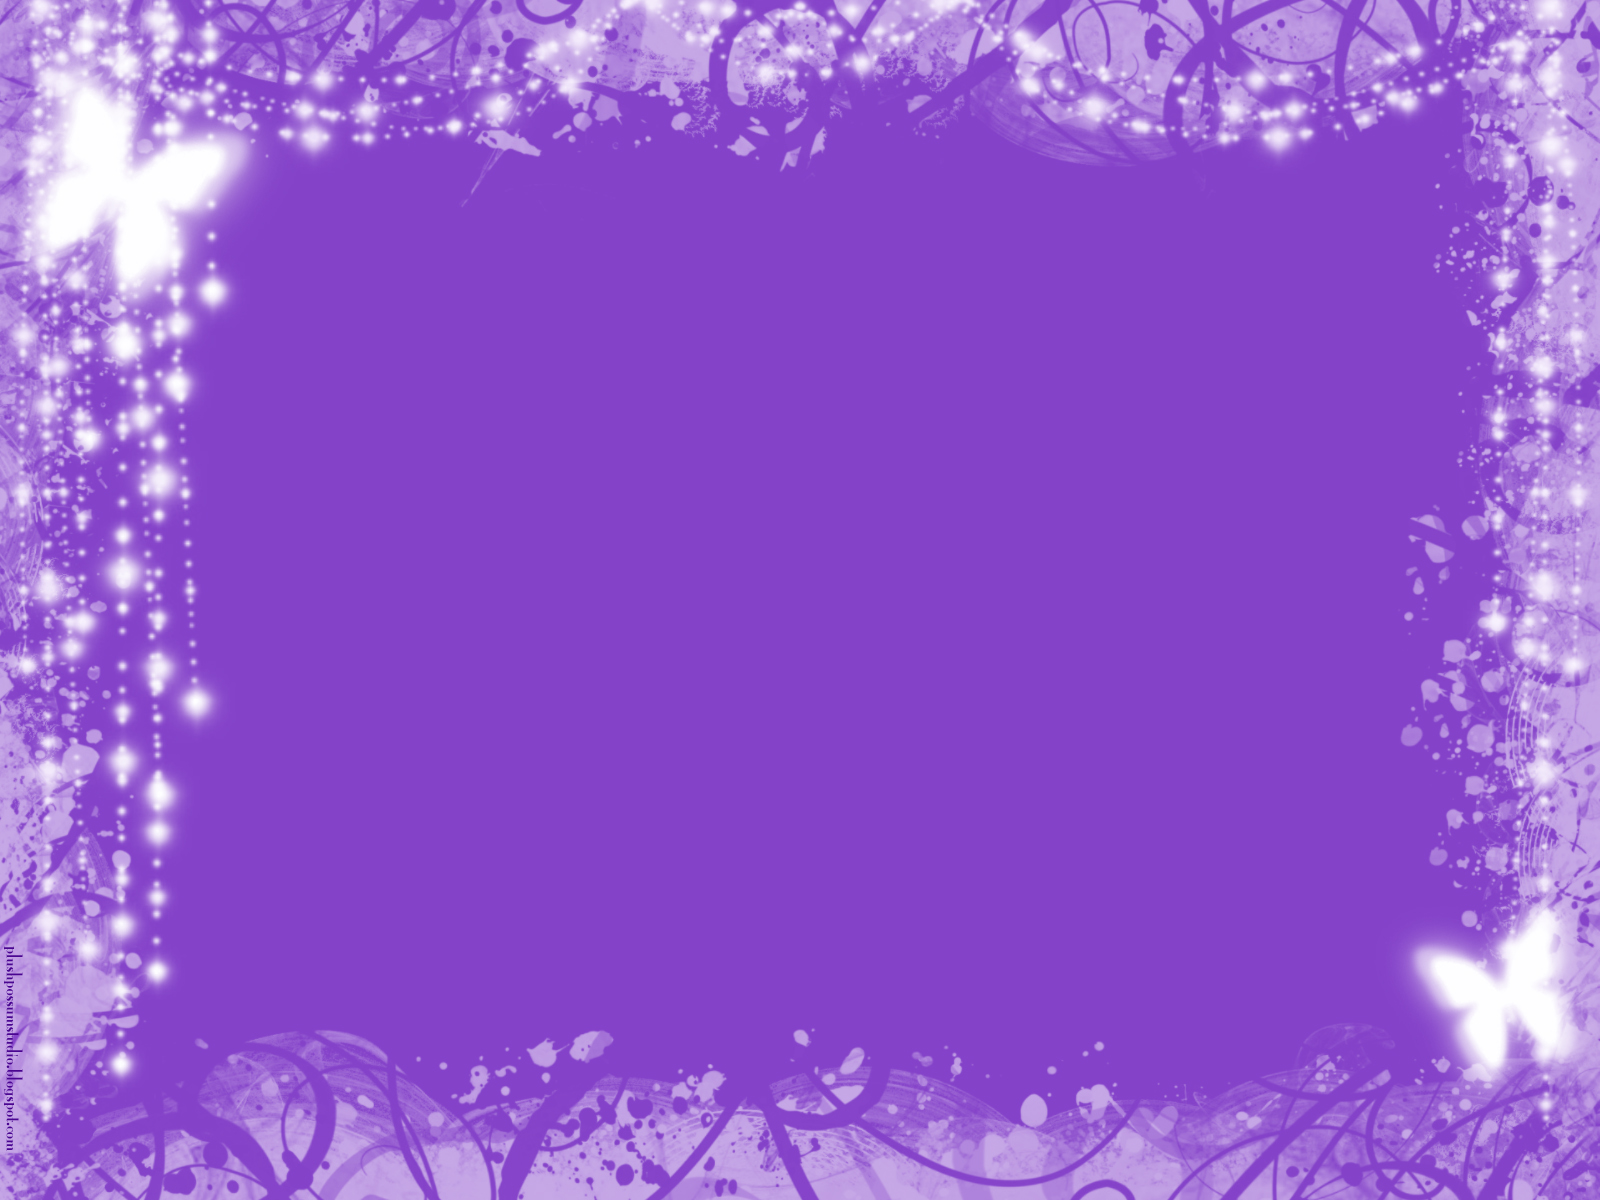 Light Lavender Color Background Images & Pictures - Becuo